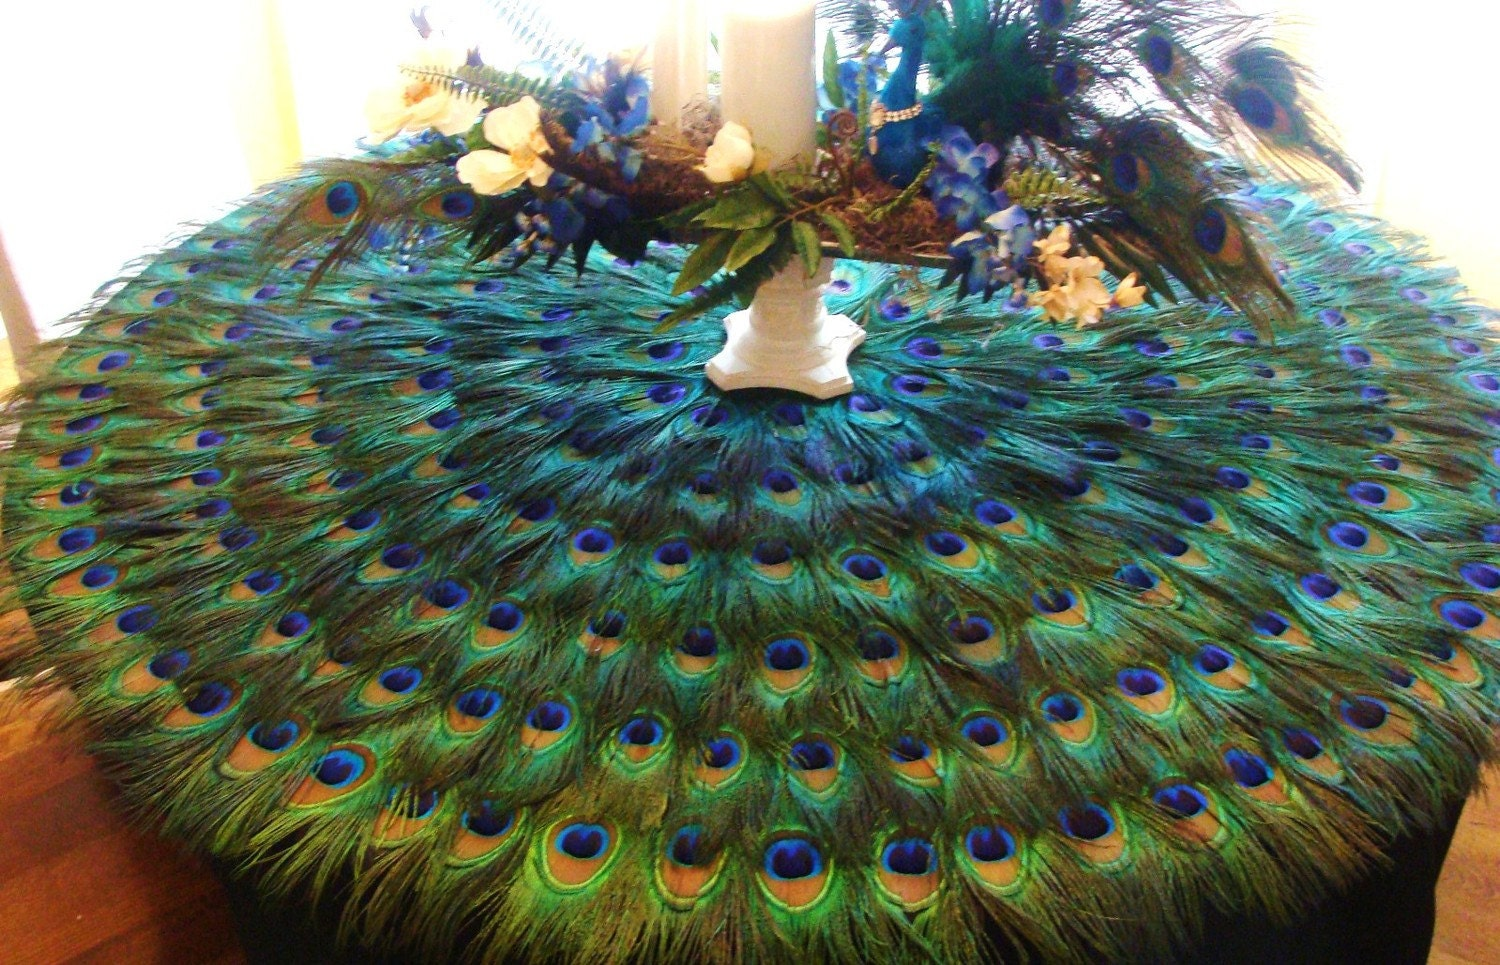 Extravagant Peacock Feather Mat CUSTOM CREATED for YOU